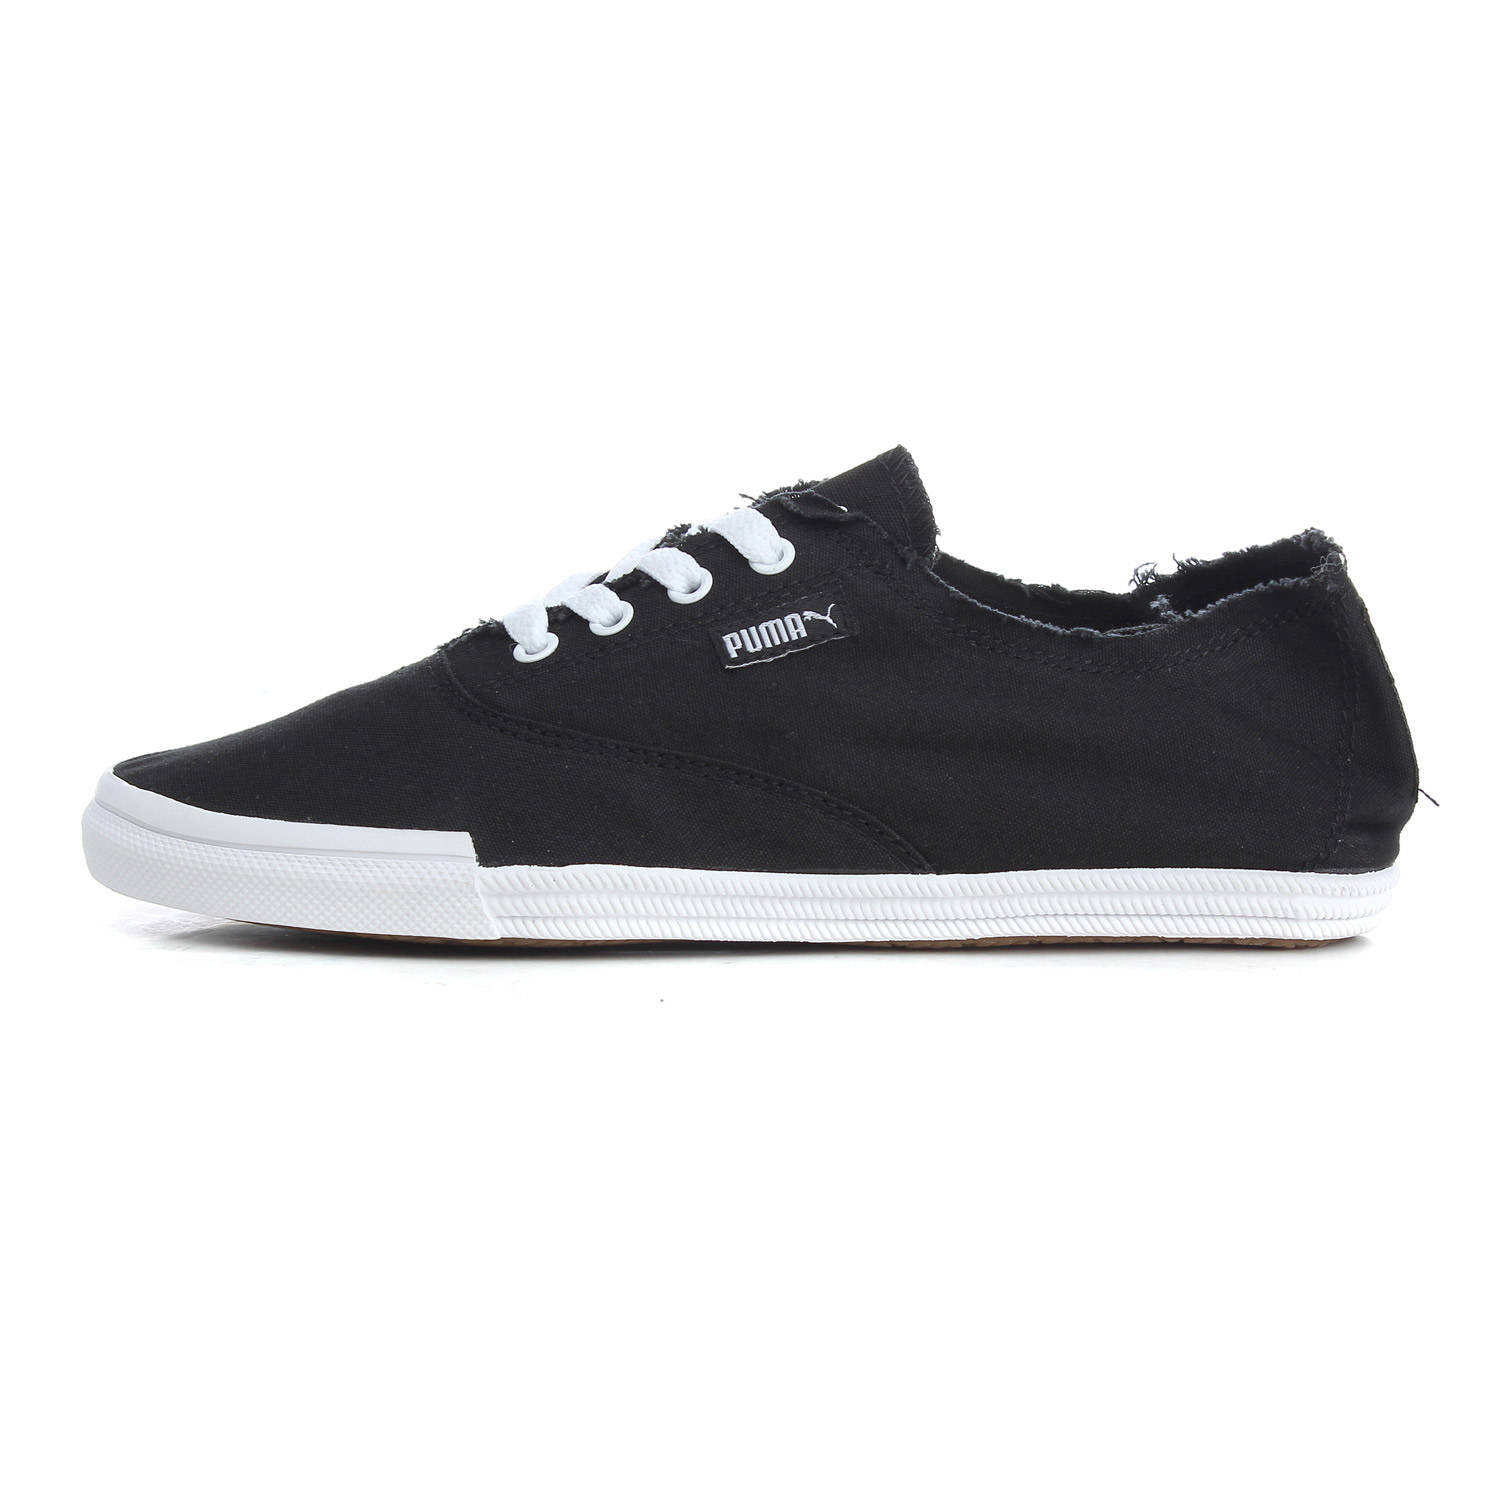 Puma puma 2014 classic series of new solid color breathable to help low canvas shoes men counter new goods 356665